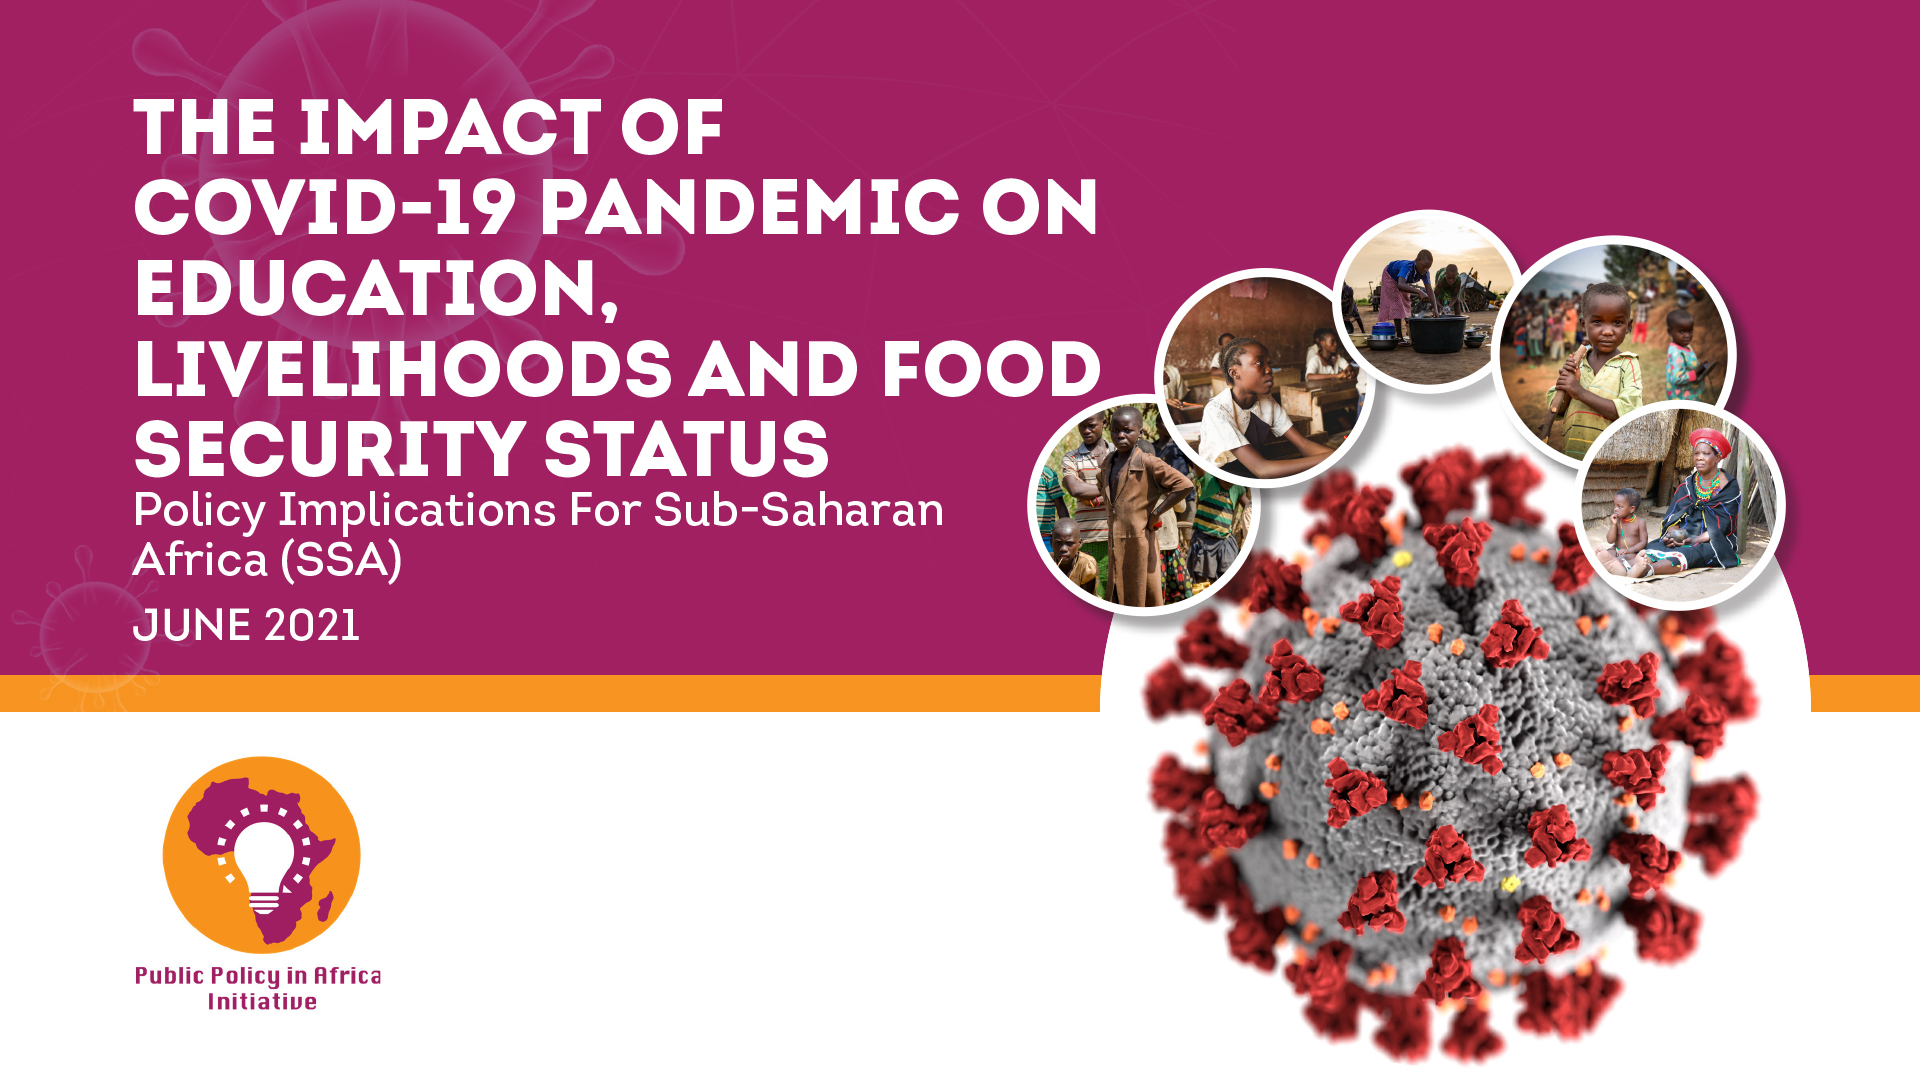 The Impact Of The Covid-19 Pandemic On Education, Livelihoods & Food Security Status: